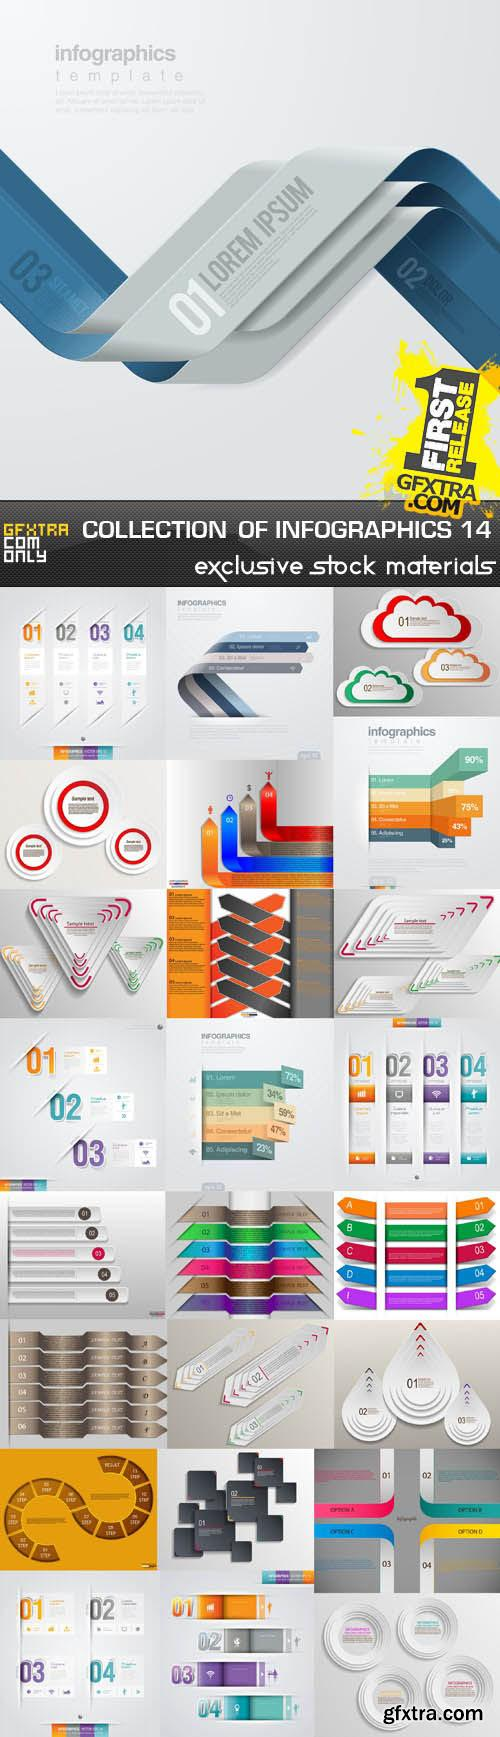 Collection of infographics vol.14